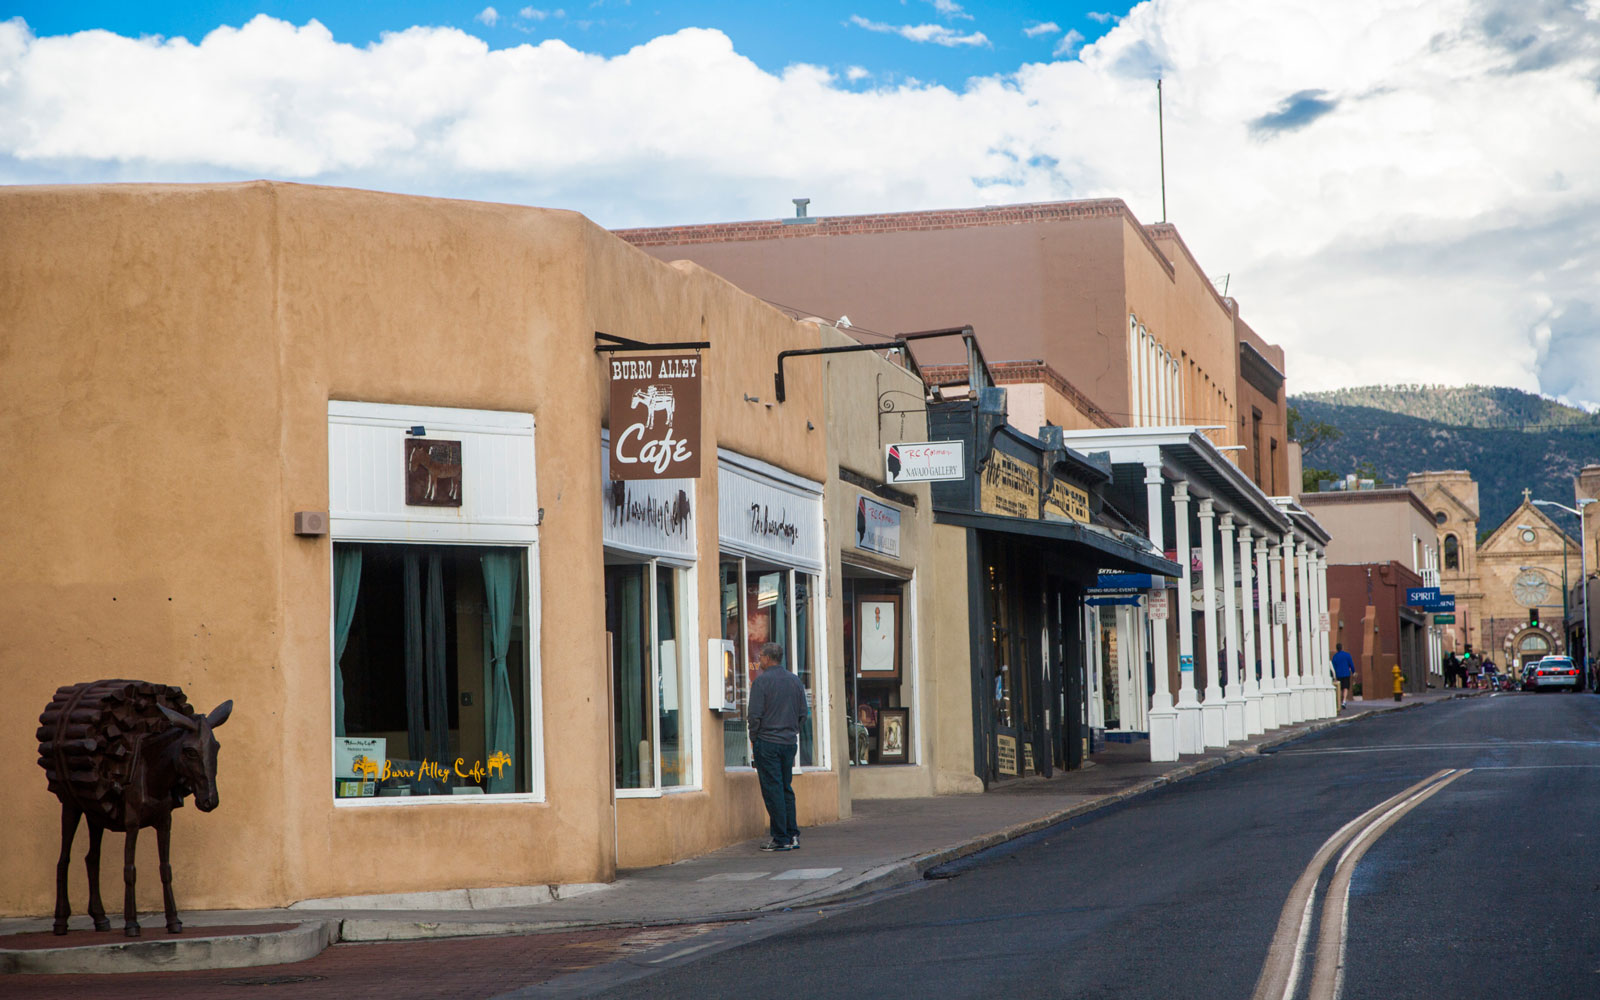 World's Friendliest Cities: Santa Fe, New Mexico